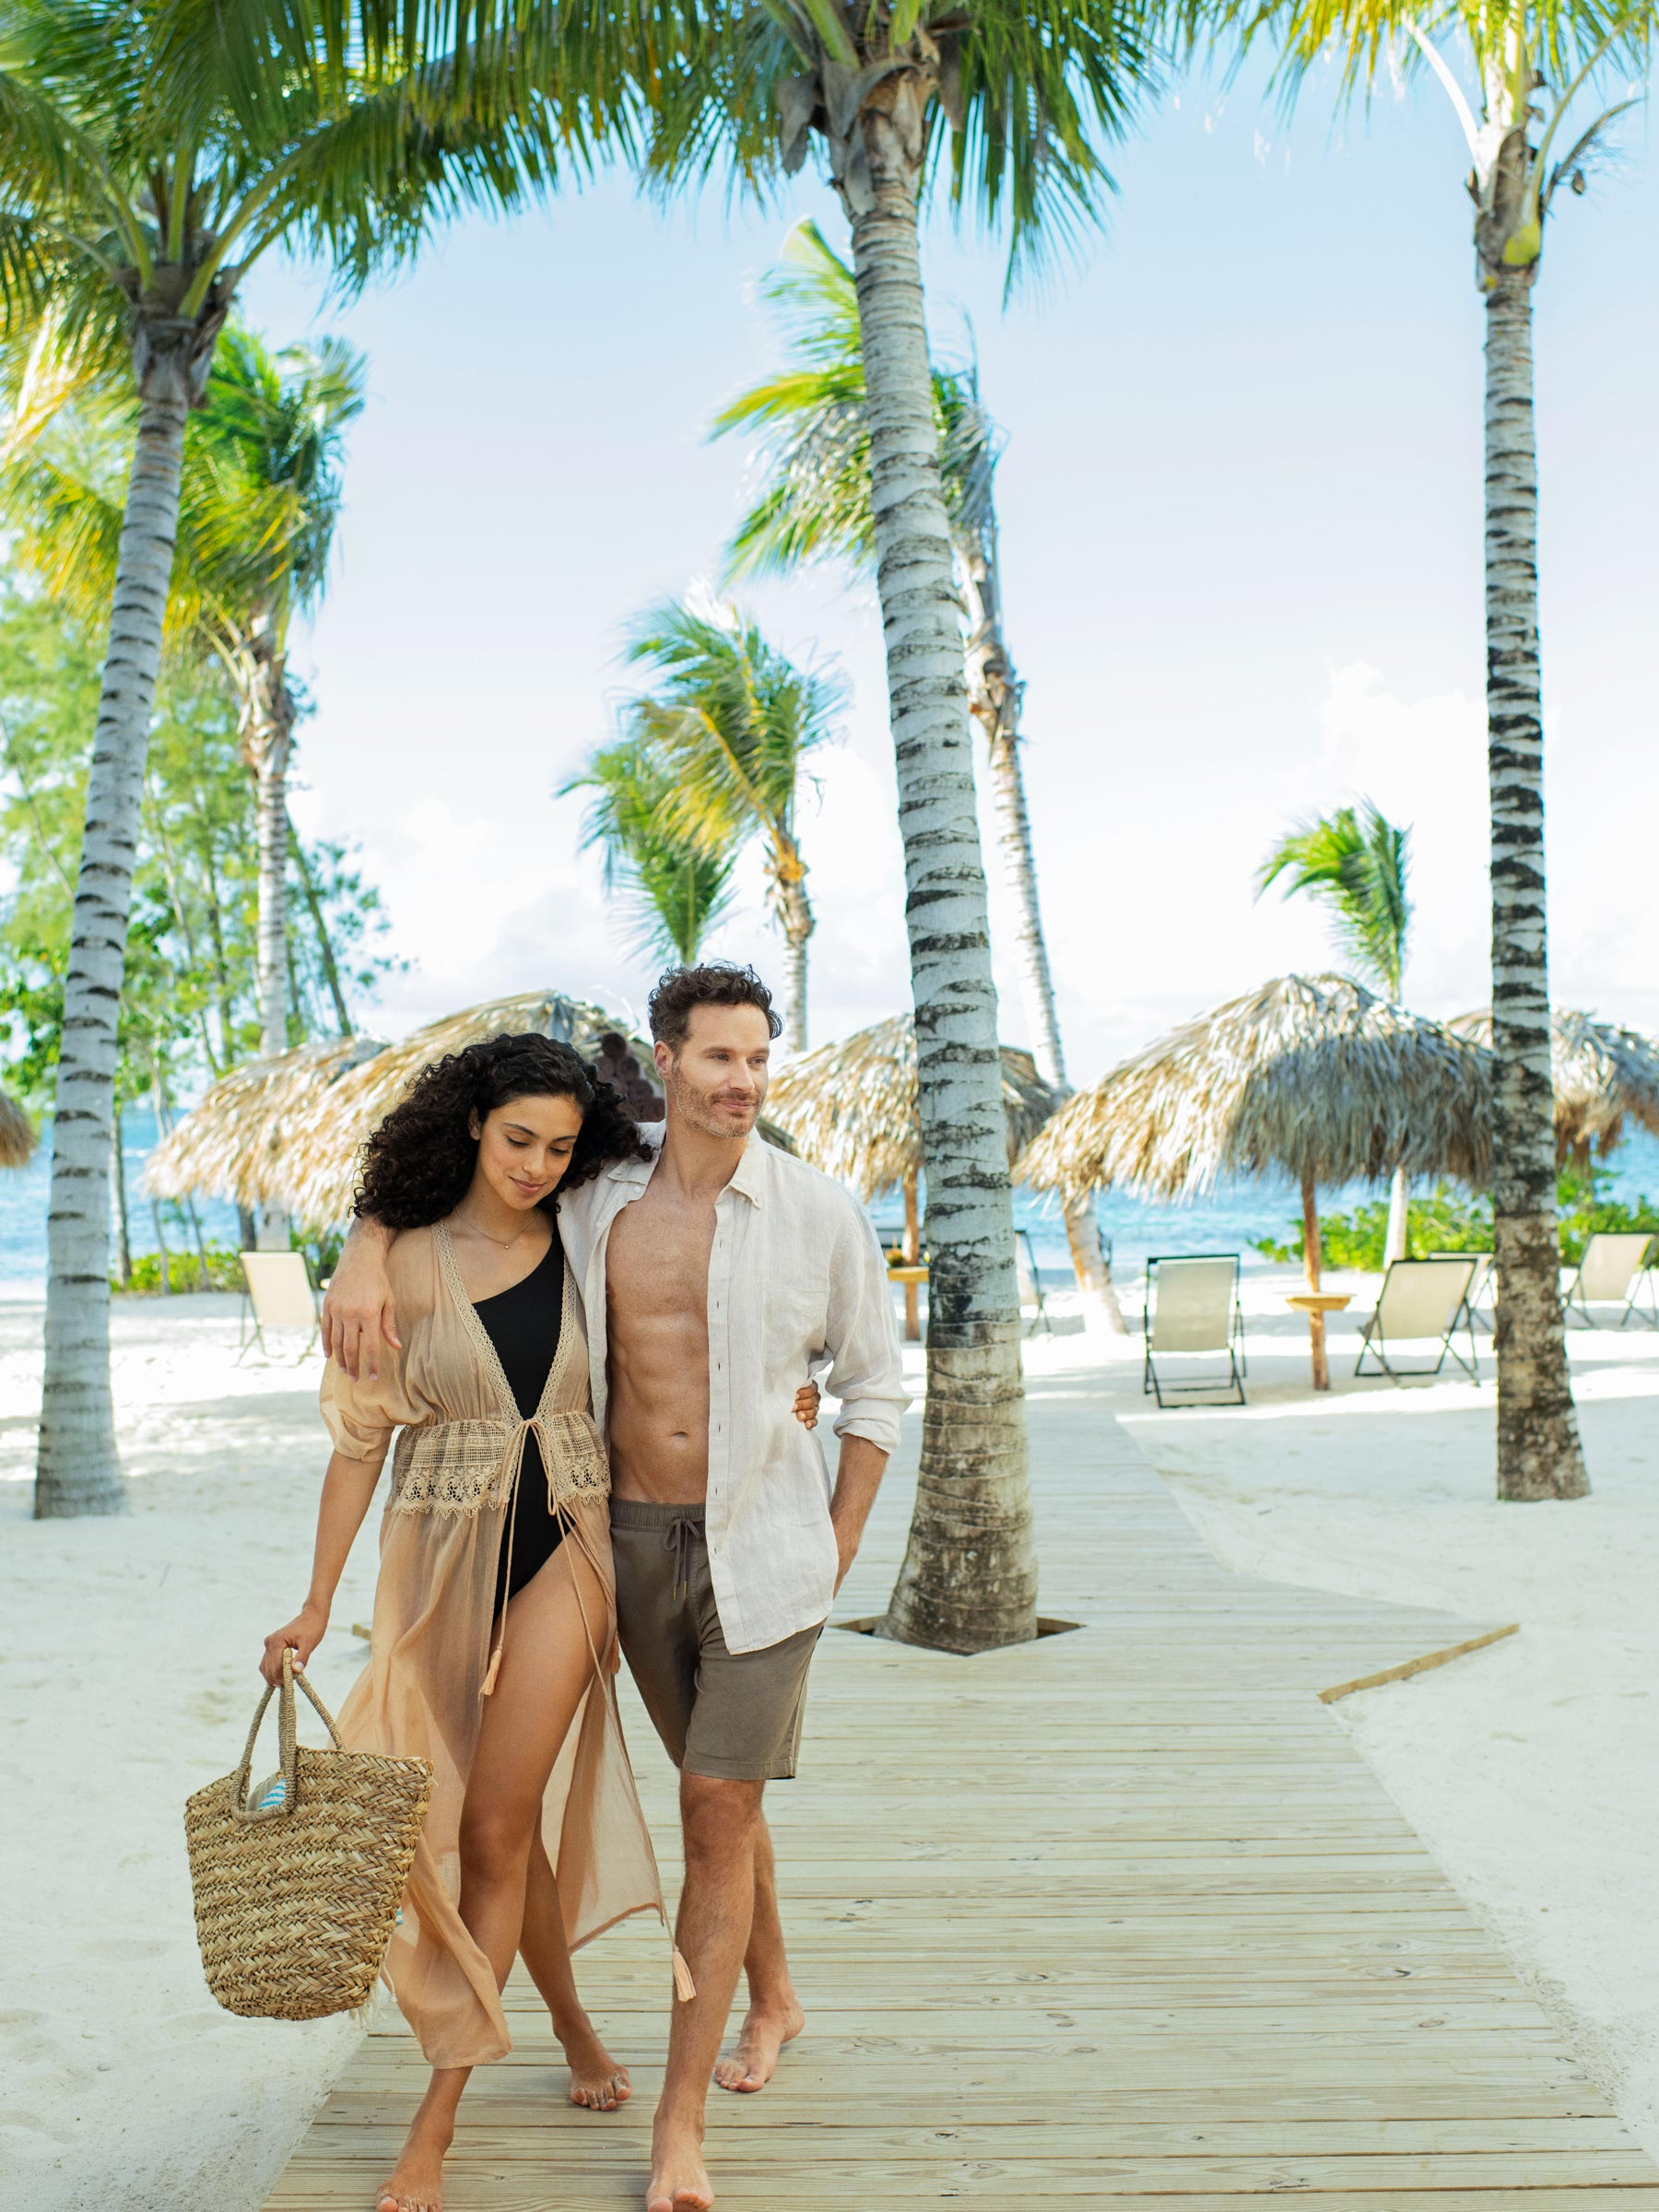 Things to Do on a Montego Bay Honeymoon